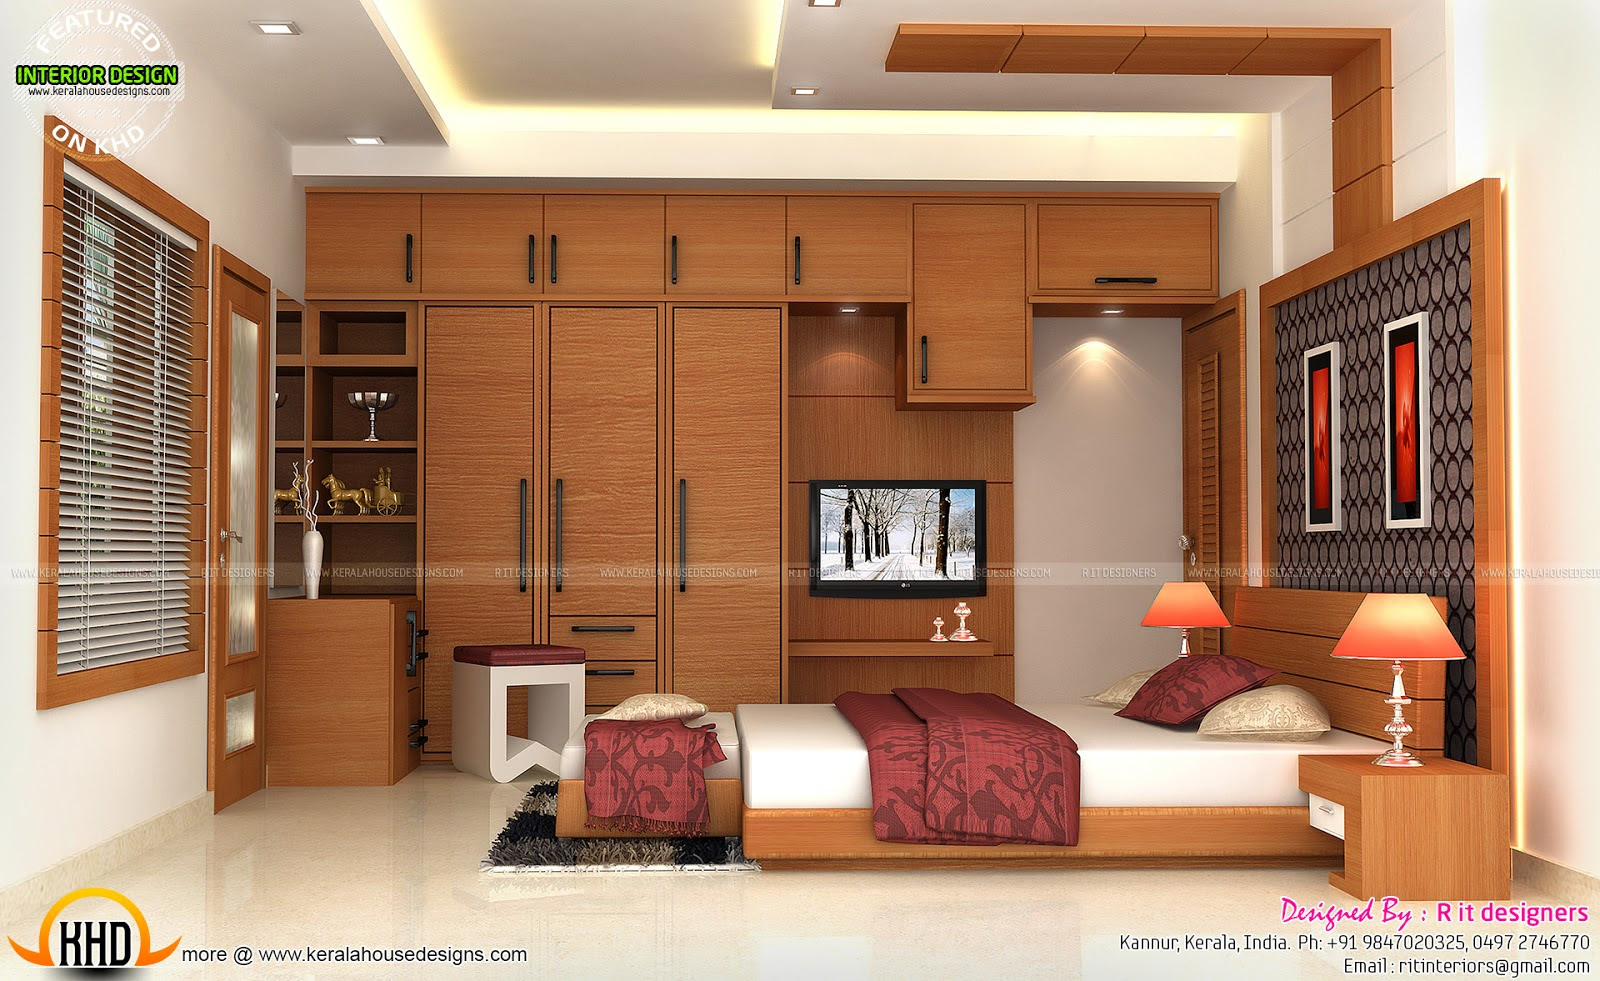 Interiors Of Bedrooms And Kitchen Kerala Home Design House Kids Bedroom Ideas Best Interior Beautiful Decorating Wallpaper Photo Gallery Apppie Org